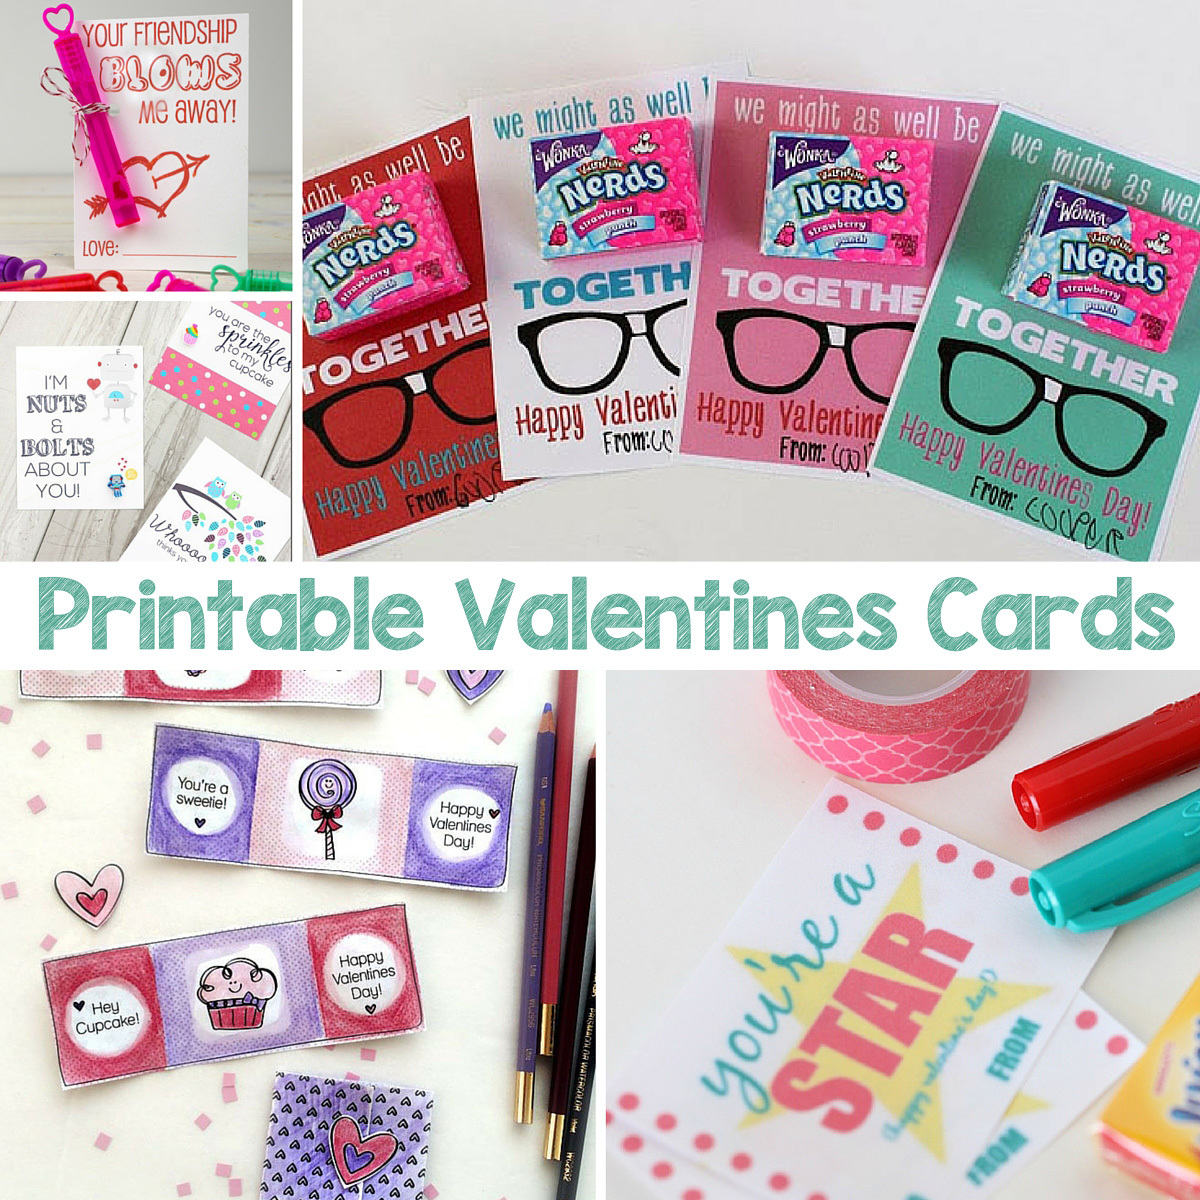 Printable Valentines Cards